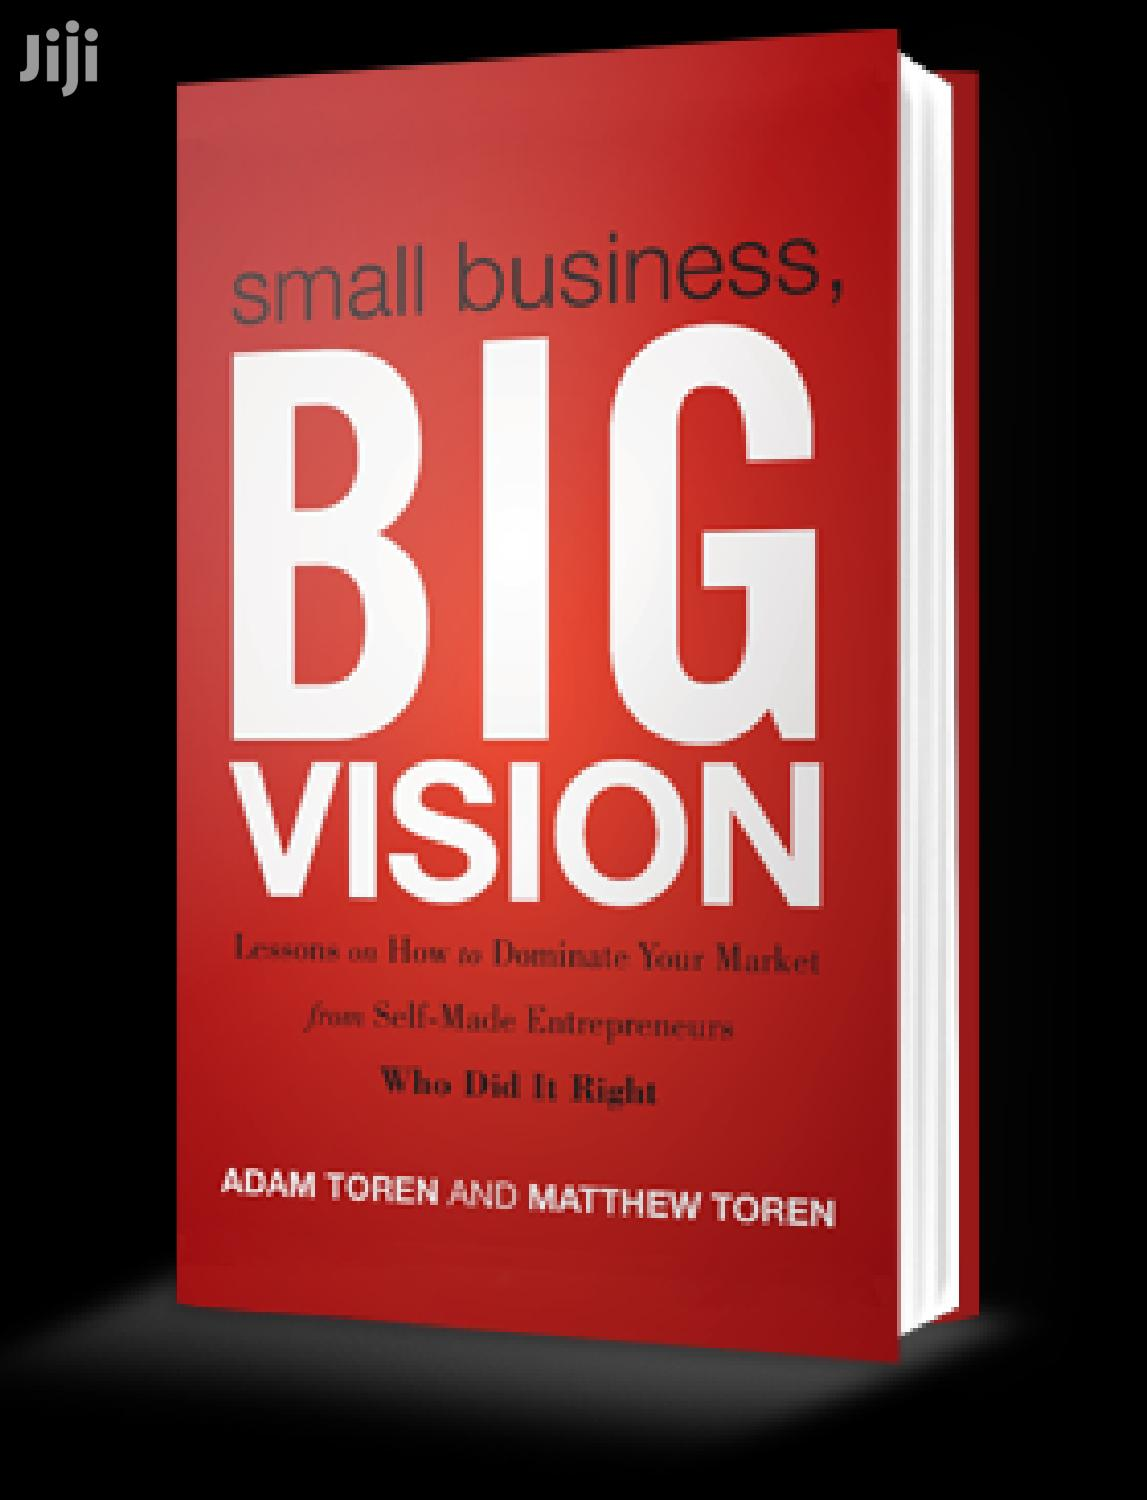 Small Business Big Vision